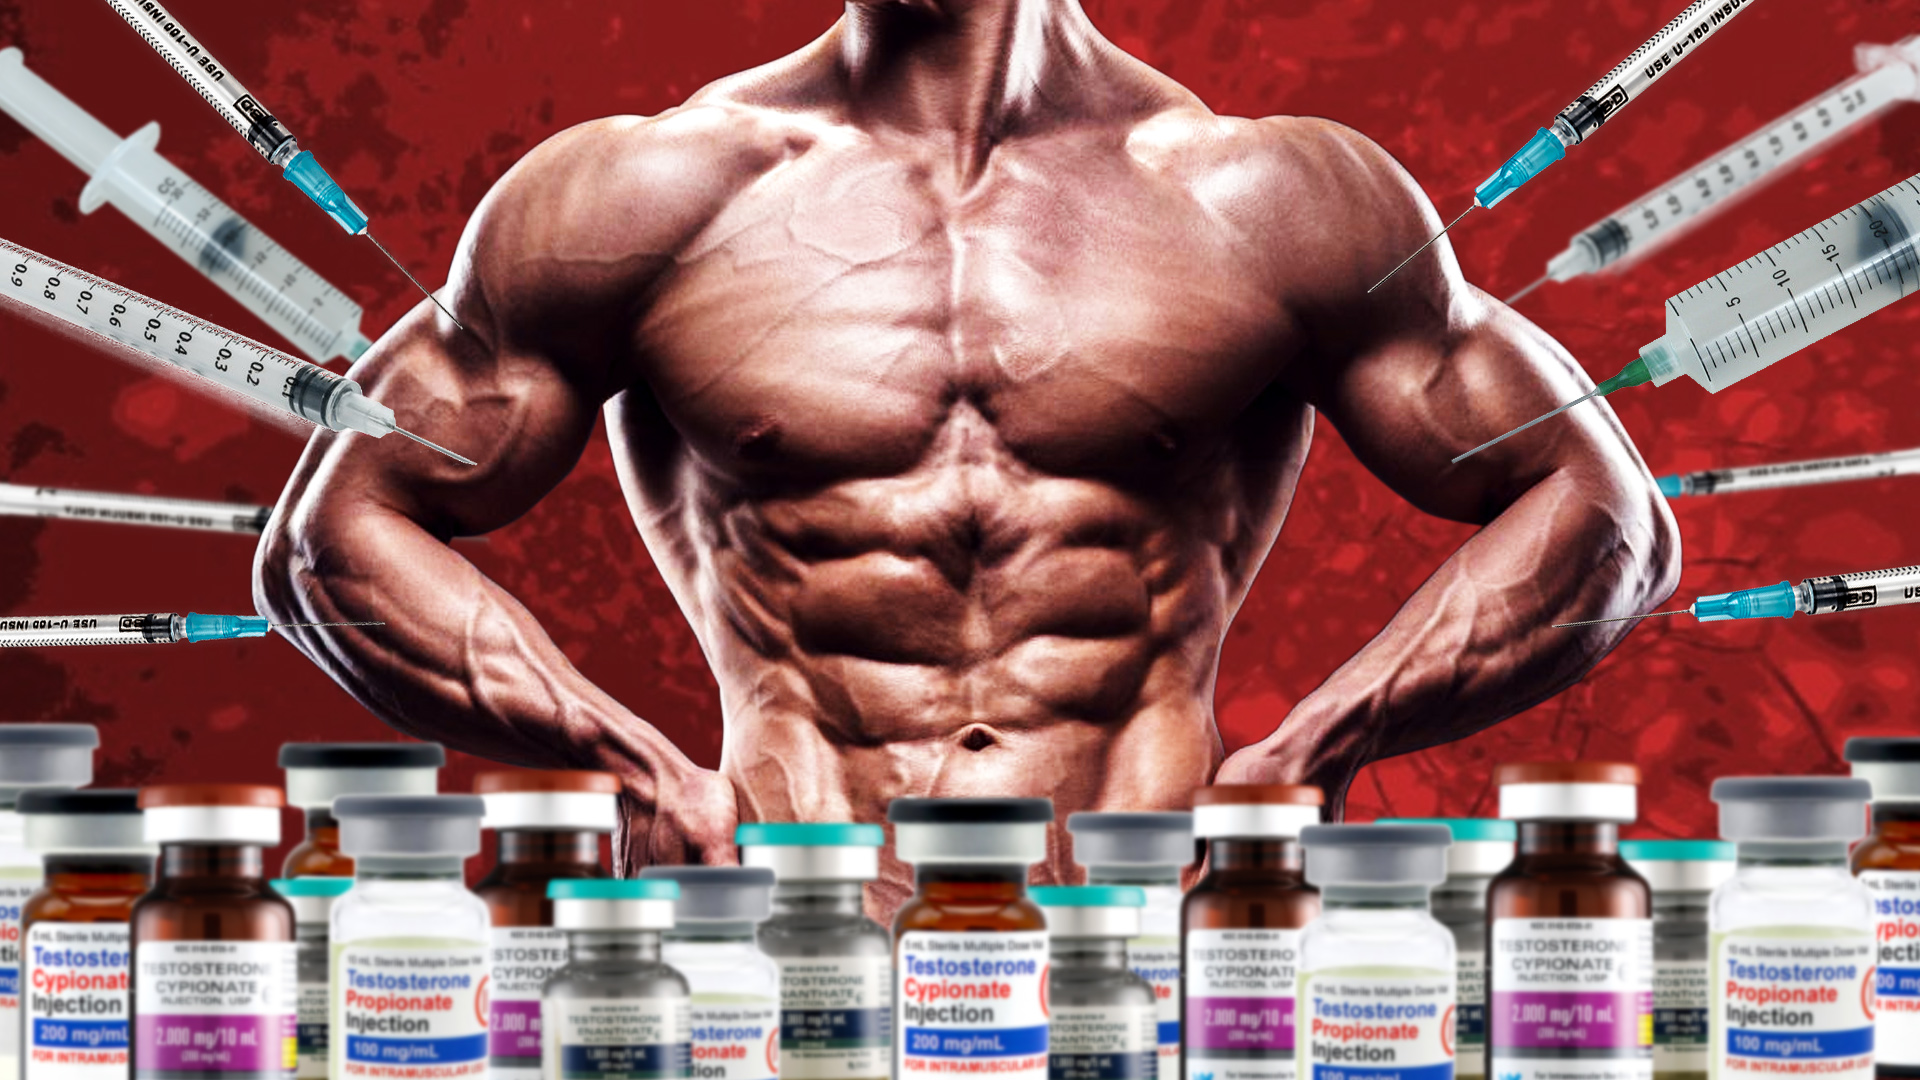 Testosterone for bodybuilding and the harm of its use